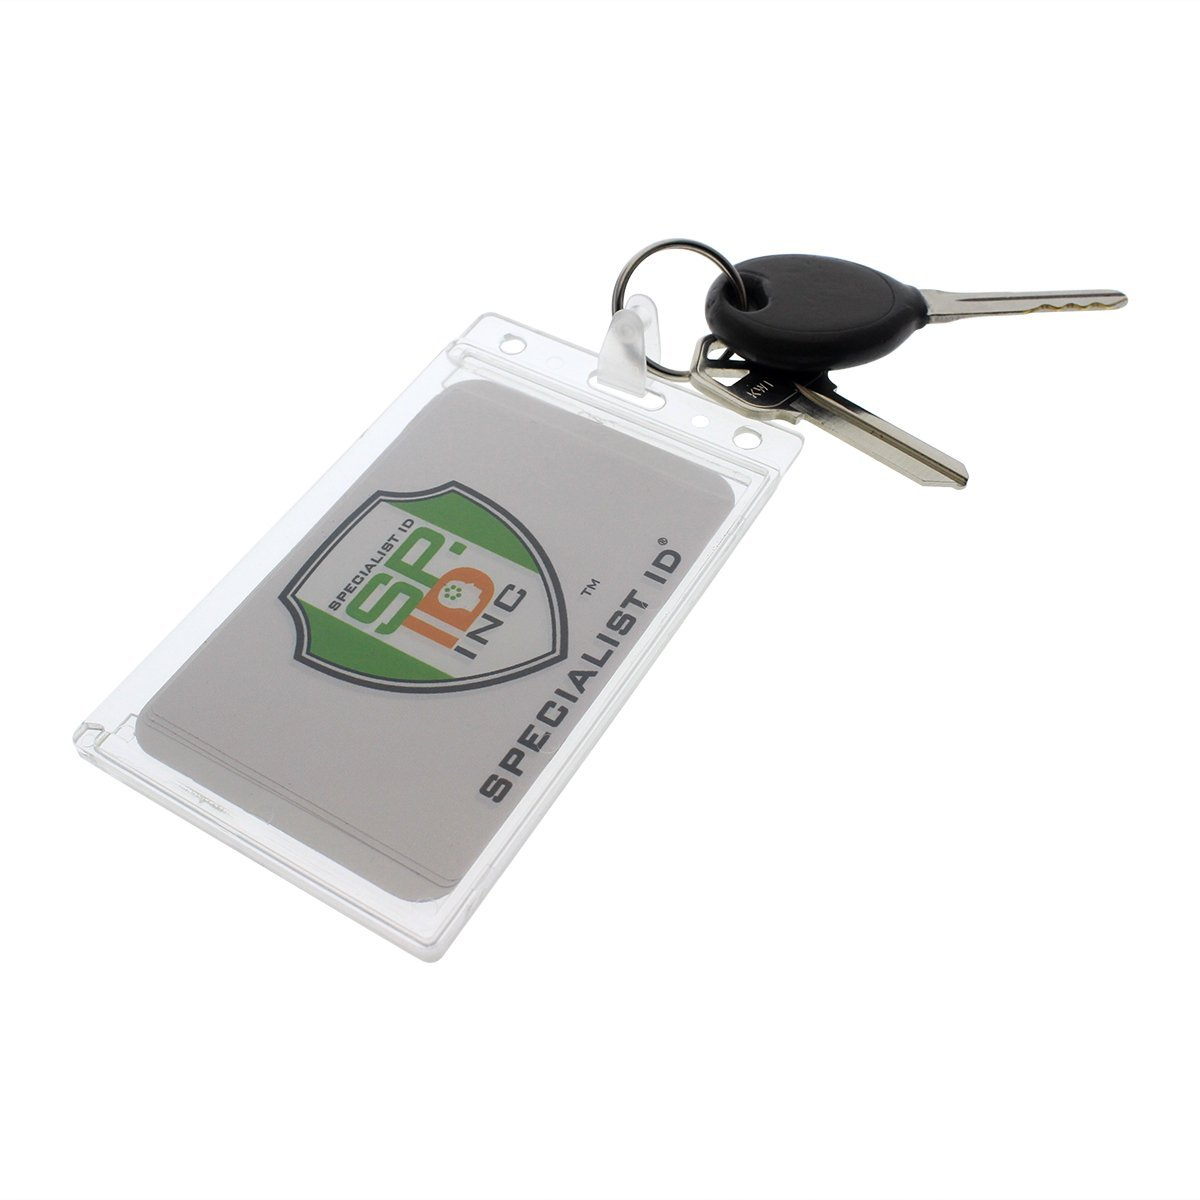 Fuel card holder key chain gas card key ring id keychain by fuel card holder key chain gas card key ring id keychain by specialist id reheart